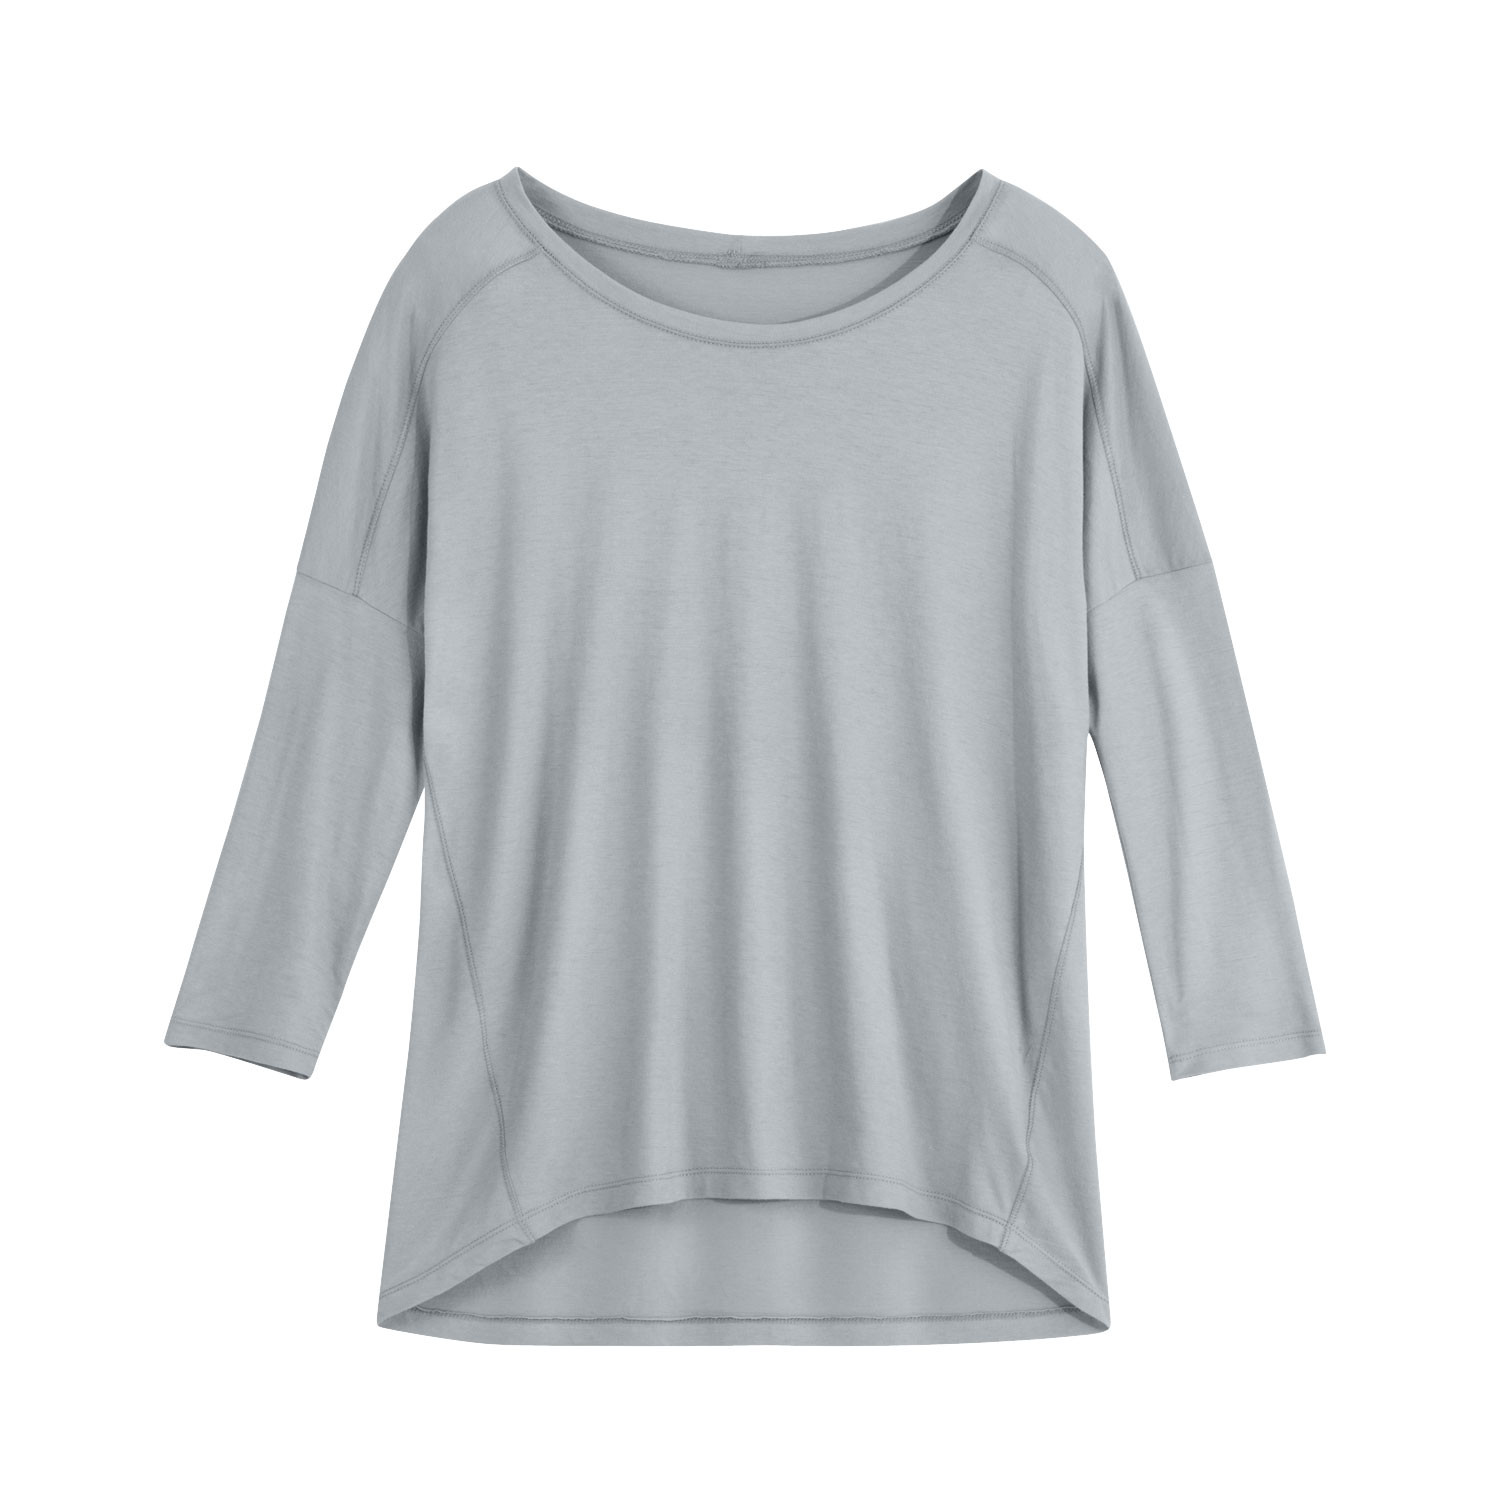 Oversized-Shirt, Silver Star